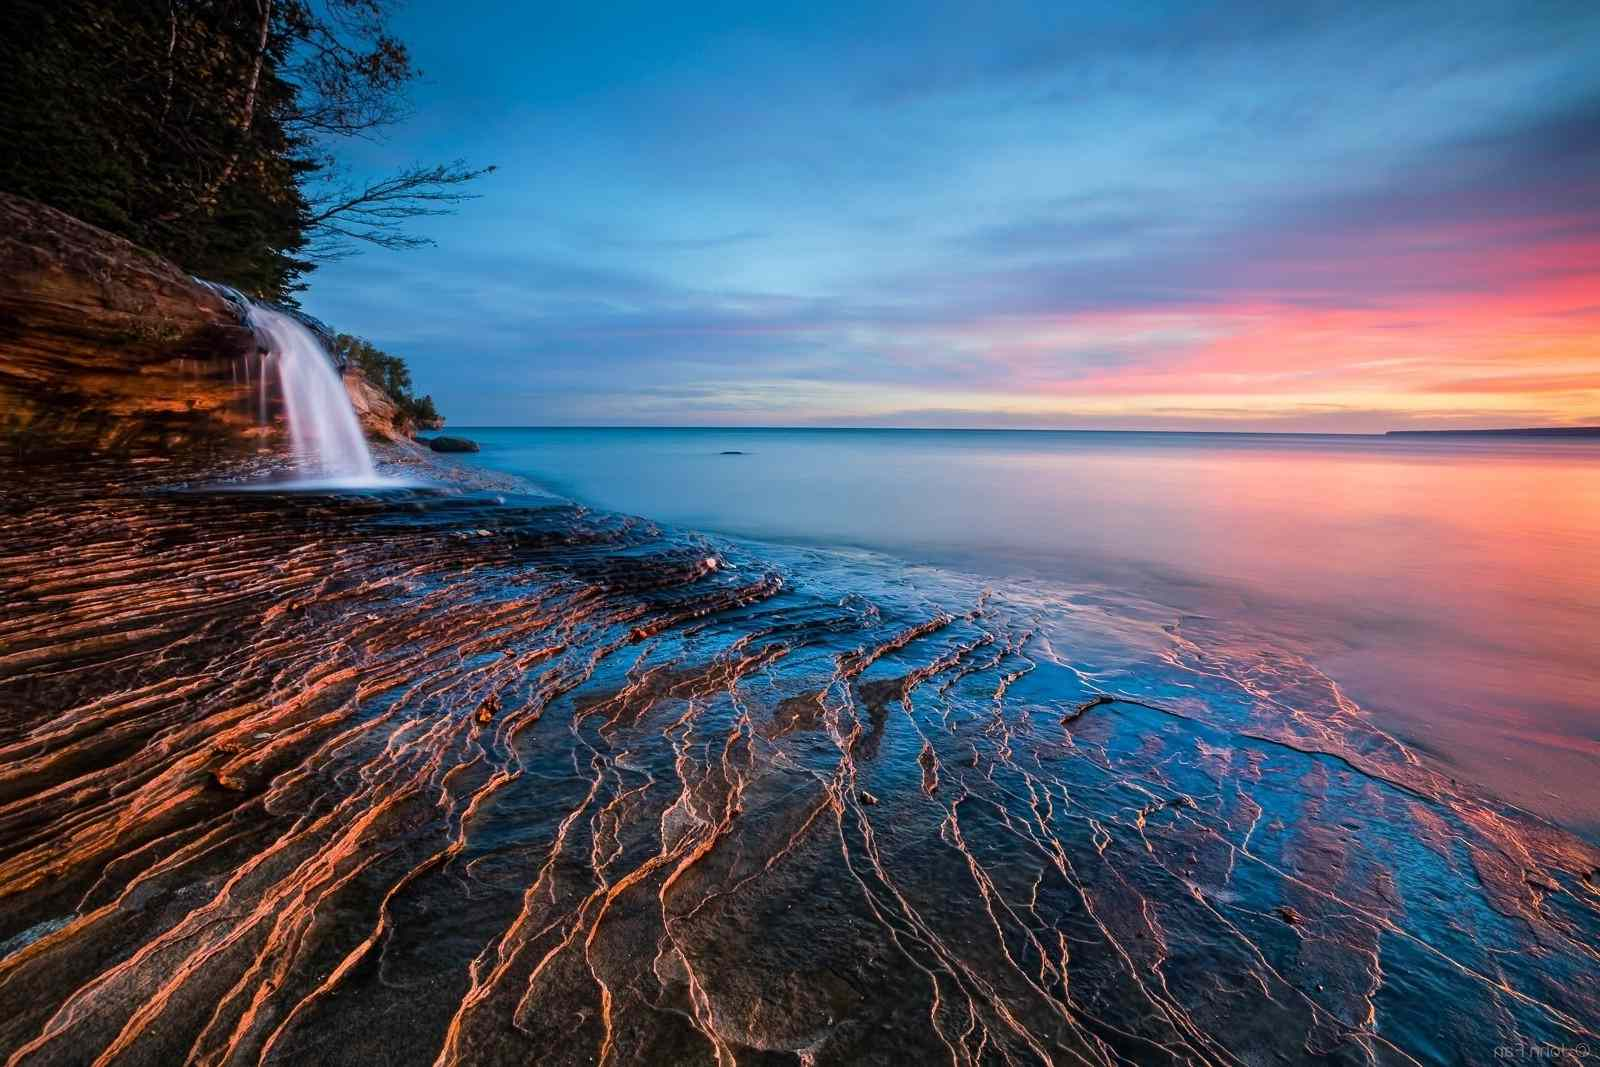 A small waterfall on a beach at sunset in this free ocean wallpaper